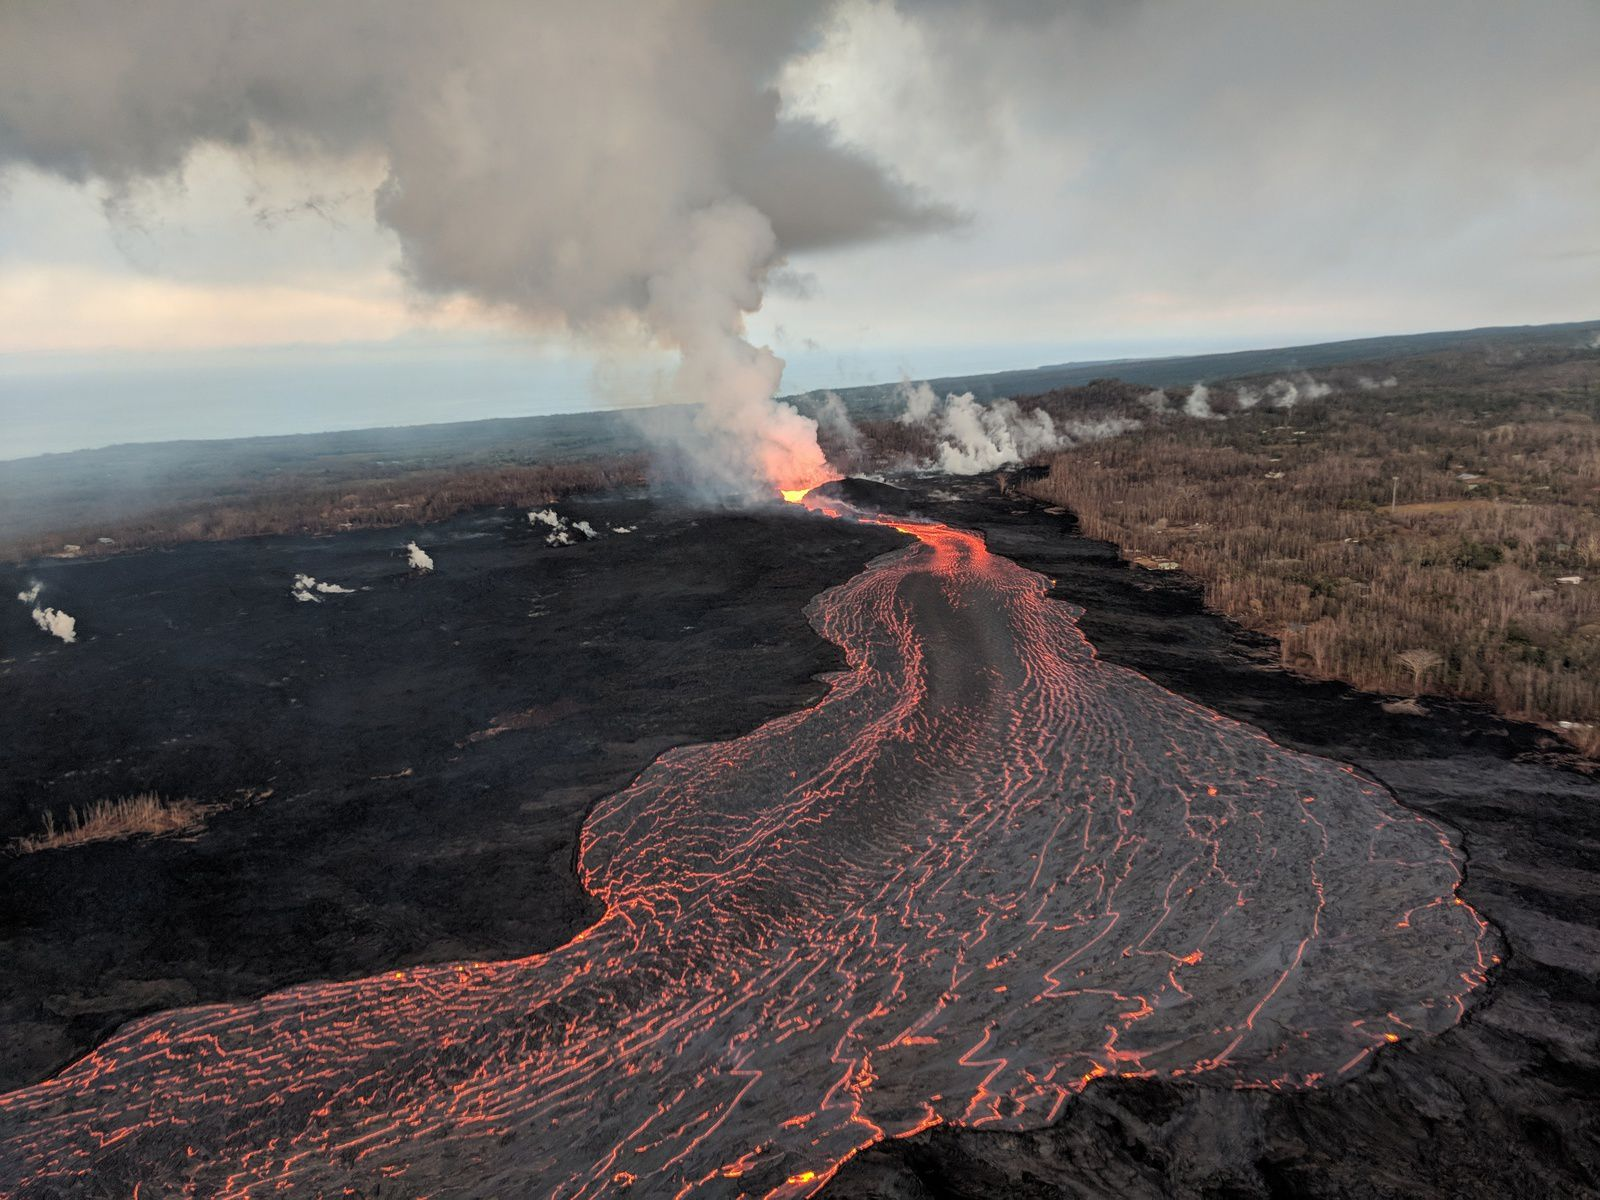 Kilauea East rift zone - the cone on fissure8 and the lava flow - USGS photo 22.07.2018